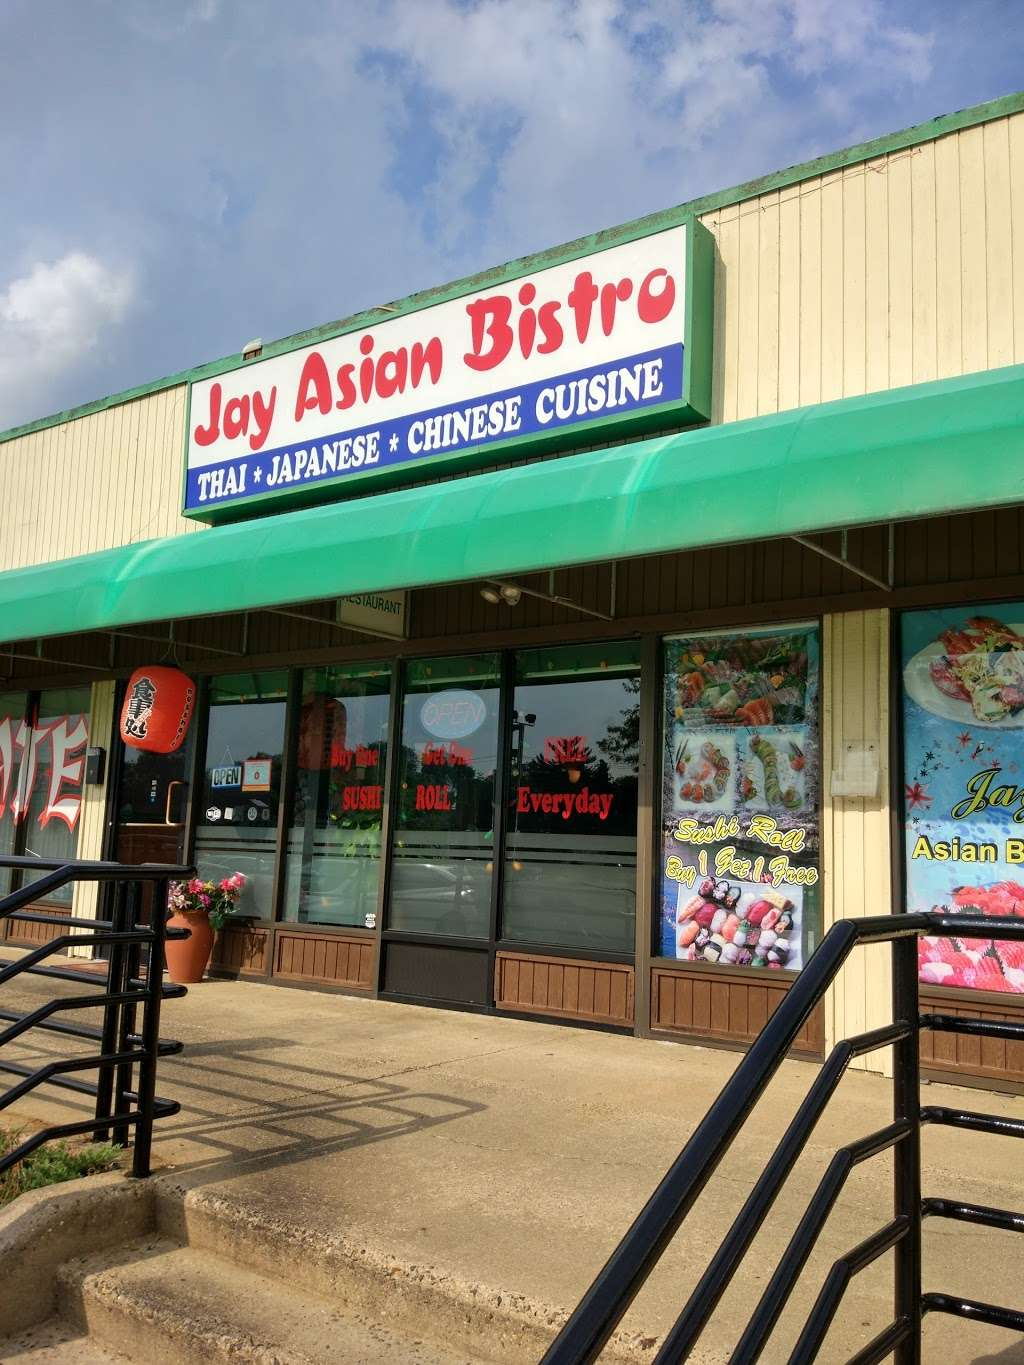 Jay Asian Bistro - meal delivery  | Photo 2 of 3 | Address: 219 Haddonfield-Berlin Rd suite t, Cherry Hill, NJ 08034, USA | Phone: (856) 428-9388